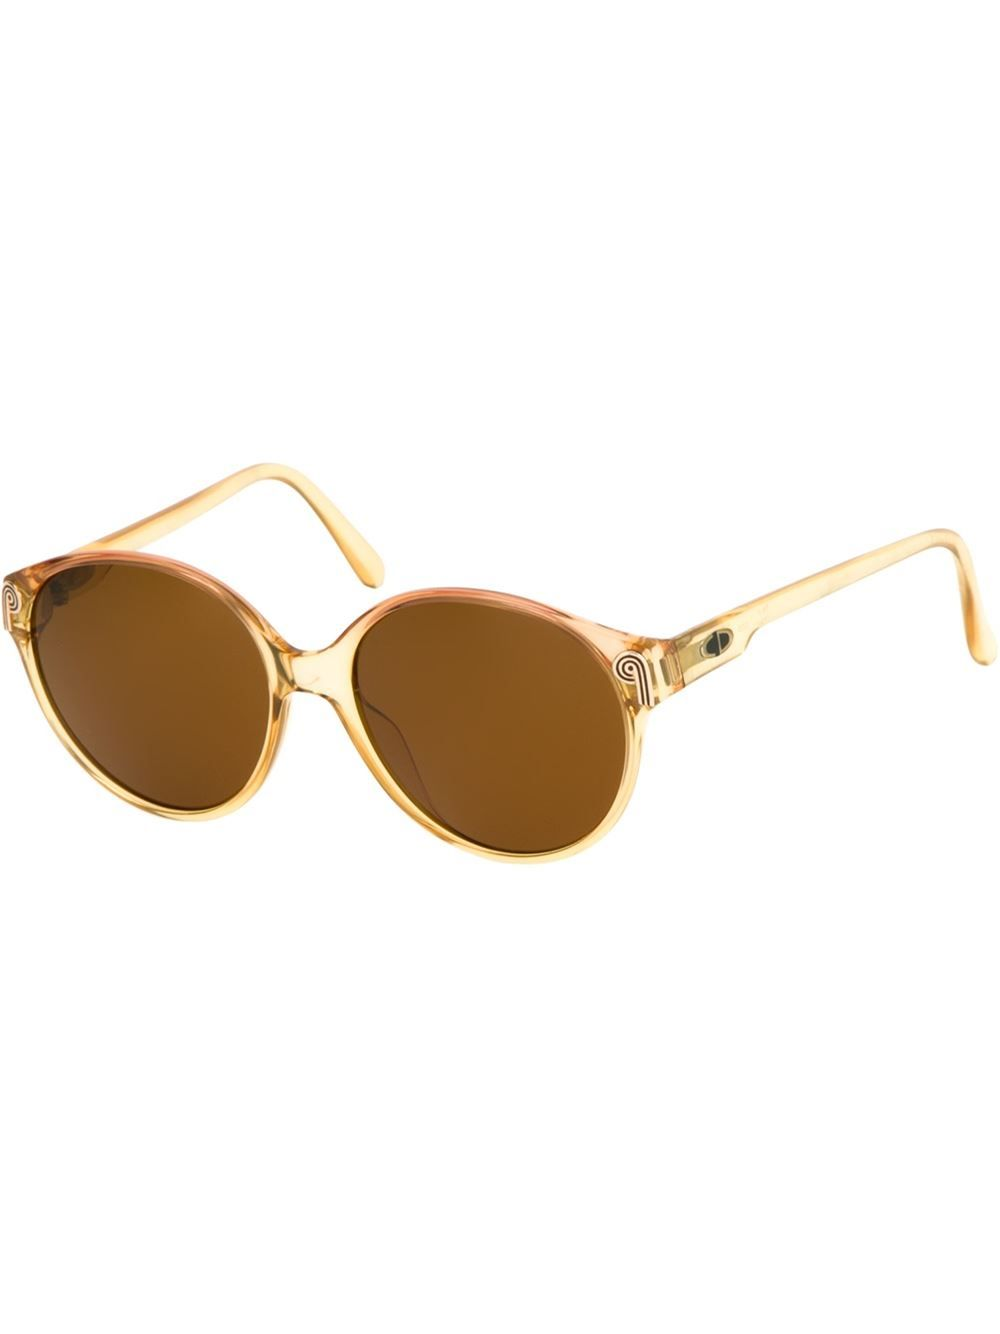 Translucent bronze-tone round frame sunglasses from Christian Dior Vintage featuring brown lenses, logo detailing at the hinges, straight arms and curved tips.